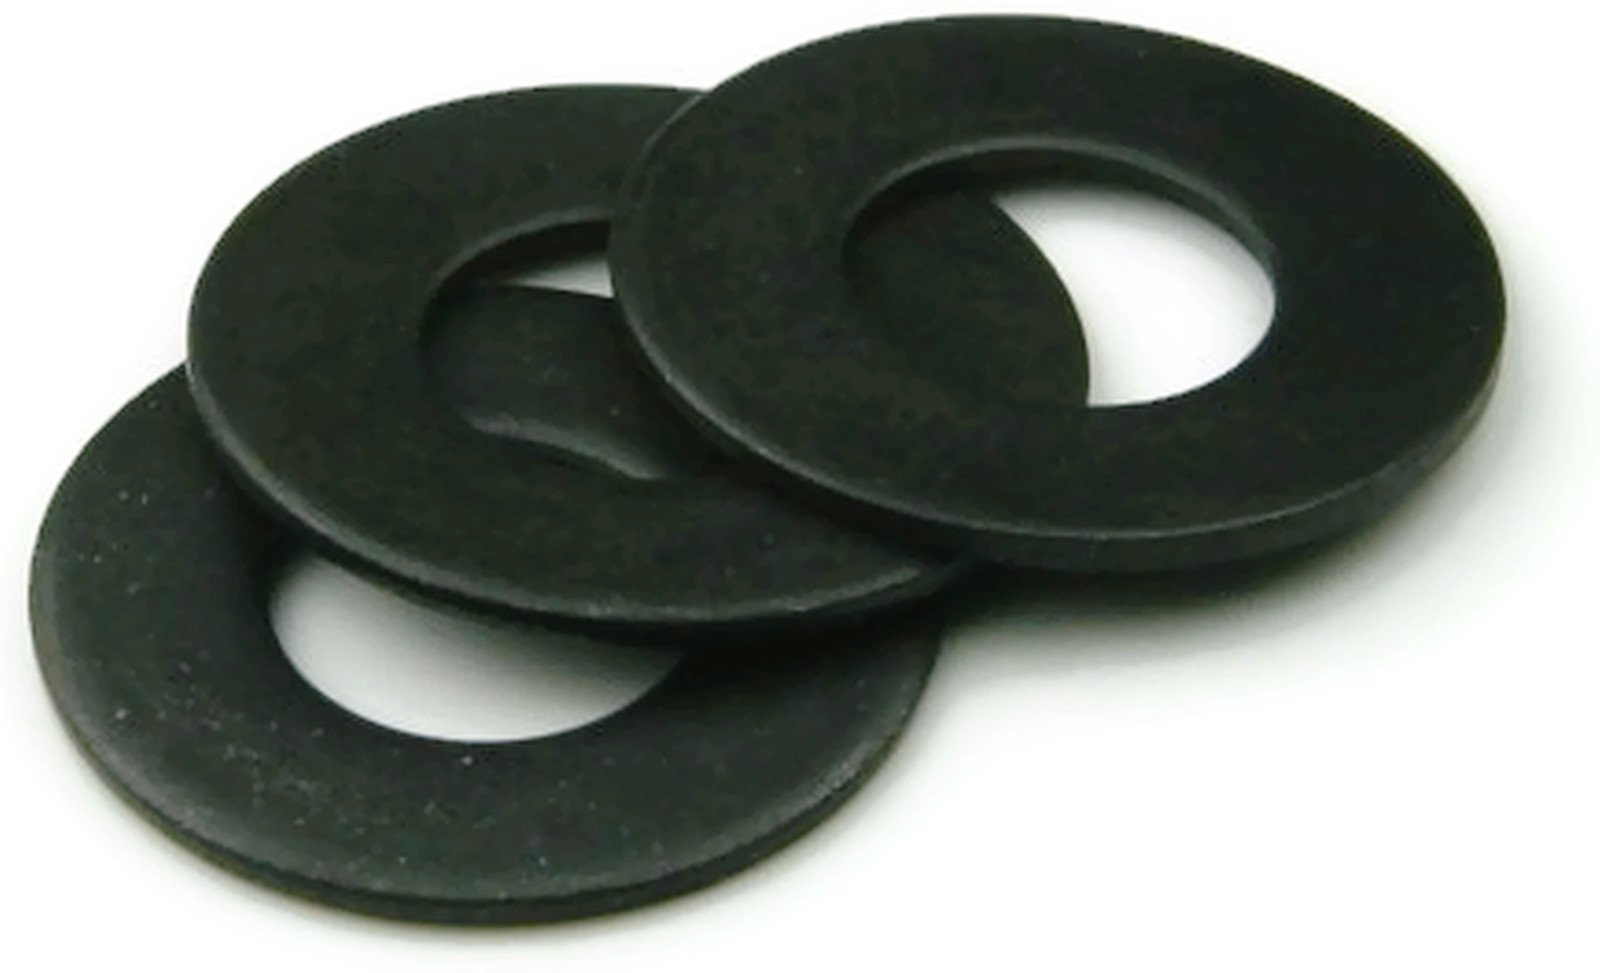 18-8 Stainless Steel Black Oxide Flat Washers - 3/8 INCH (ID 0.406 x OD 7/8 x Thick 0.050) - Qty 100